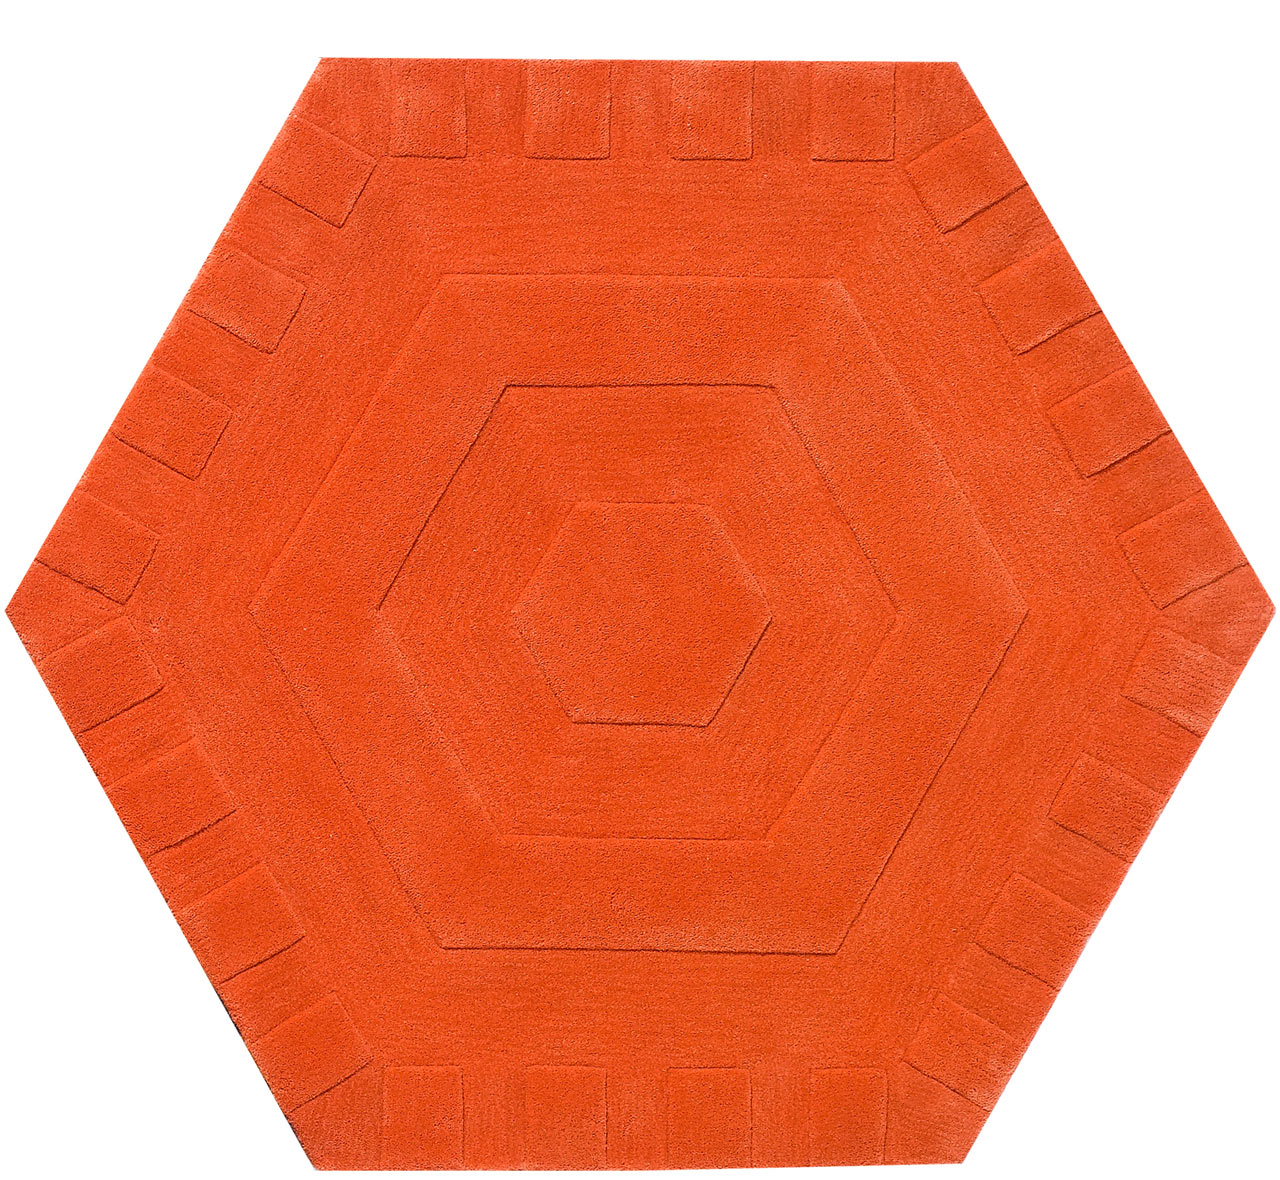 Kinder-GROUND-Modular-Carpet-10-tangerine_blind